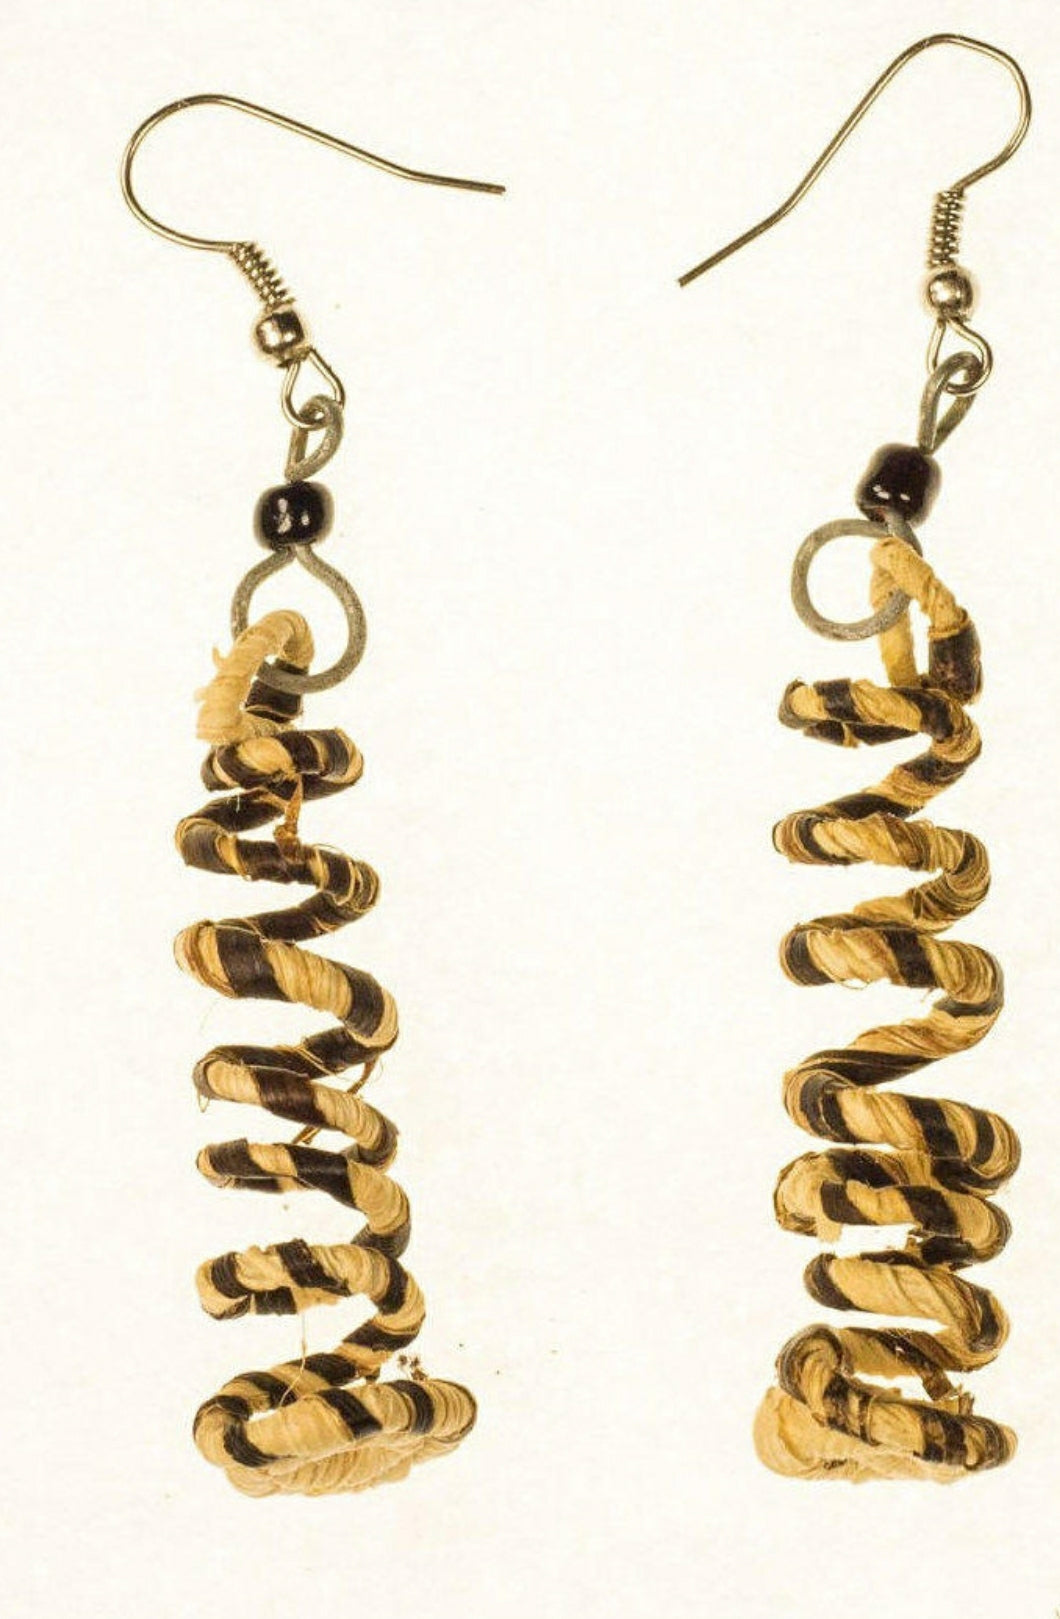 Vegan Twist and Shout Banana Fiber Earrings